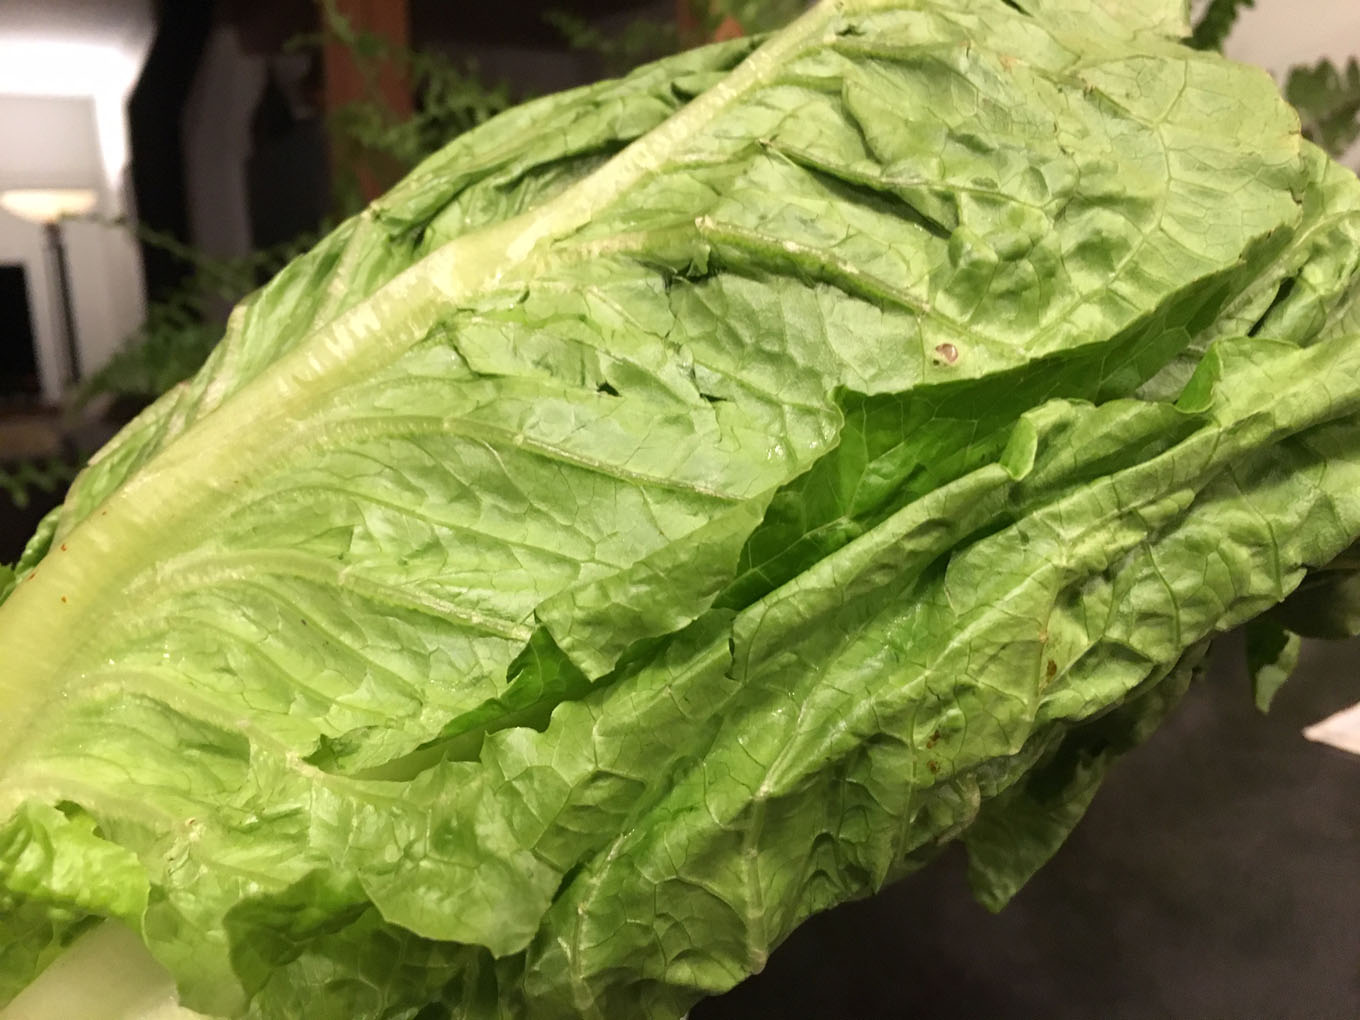 Can You Wash E. Coli Off Your Romaine Lettuce?